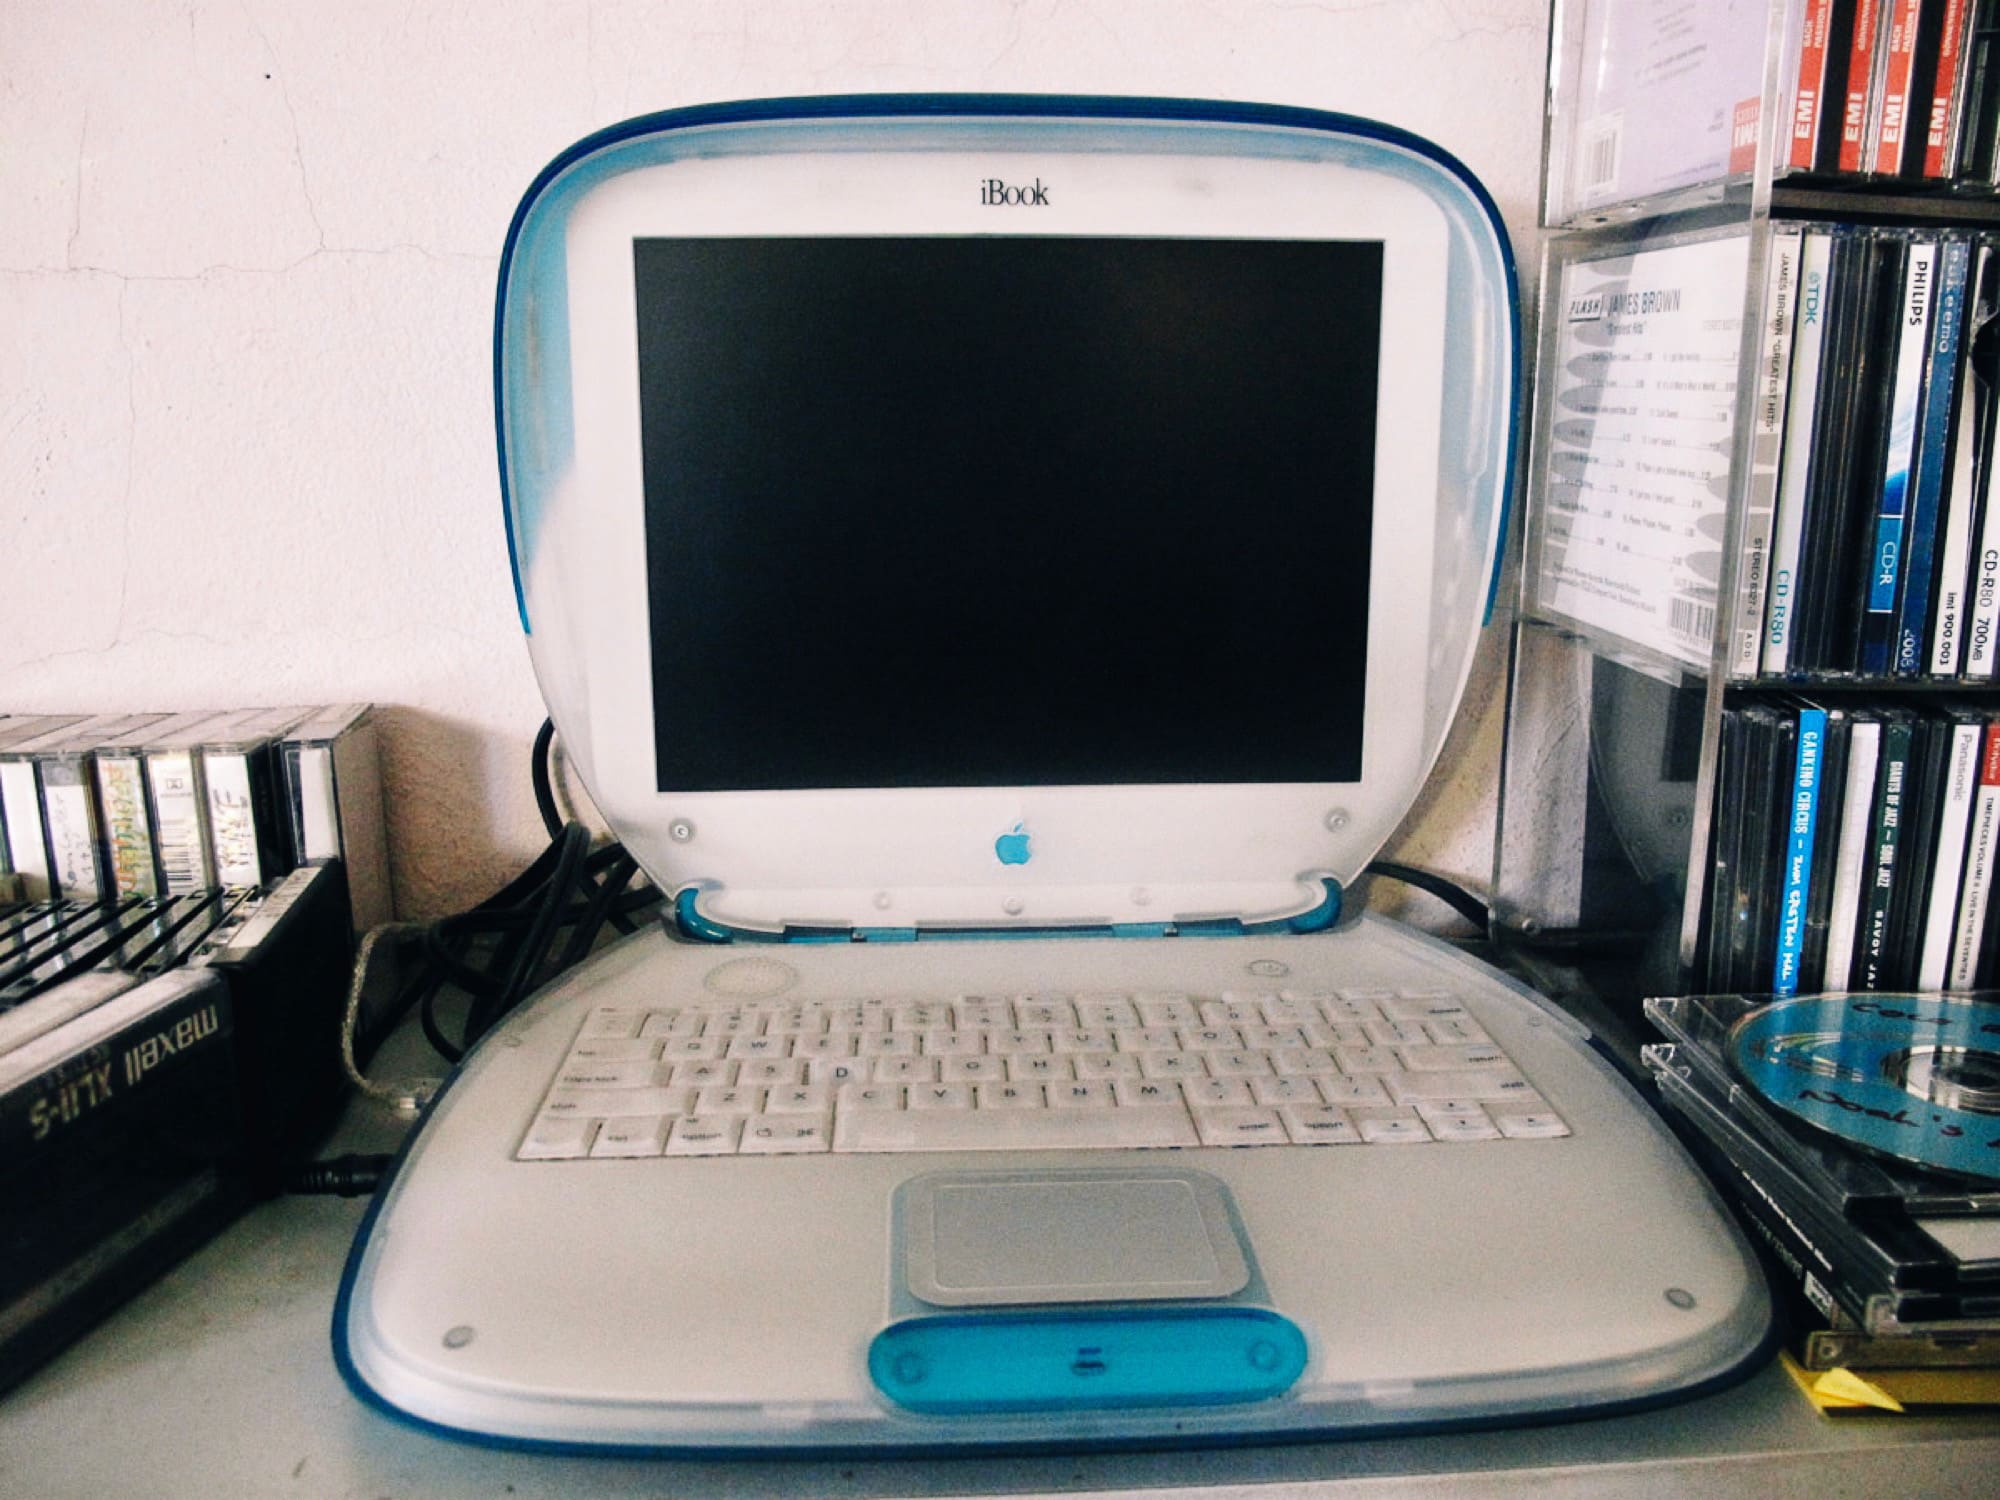 Old toilet seat iBook